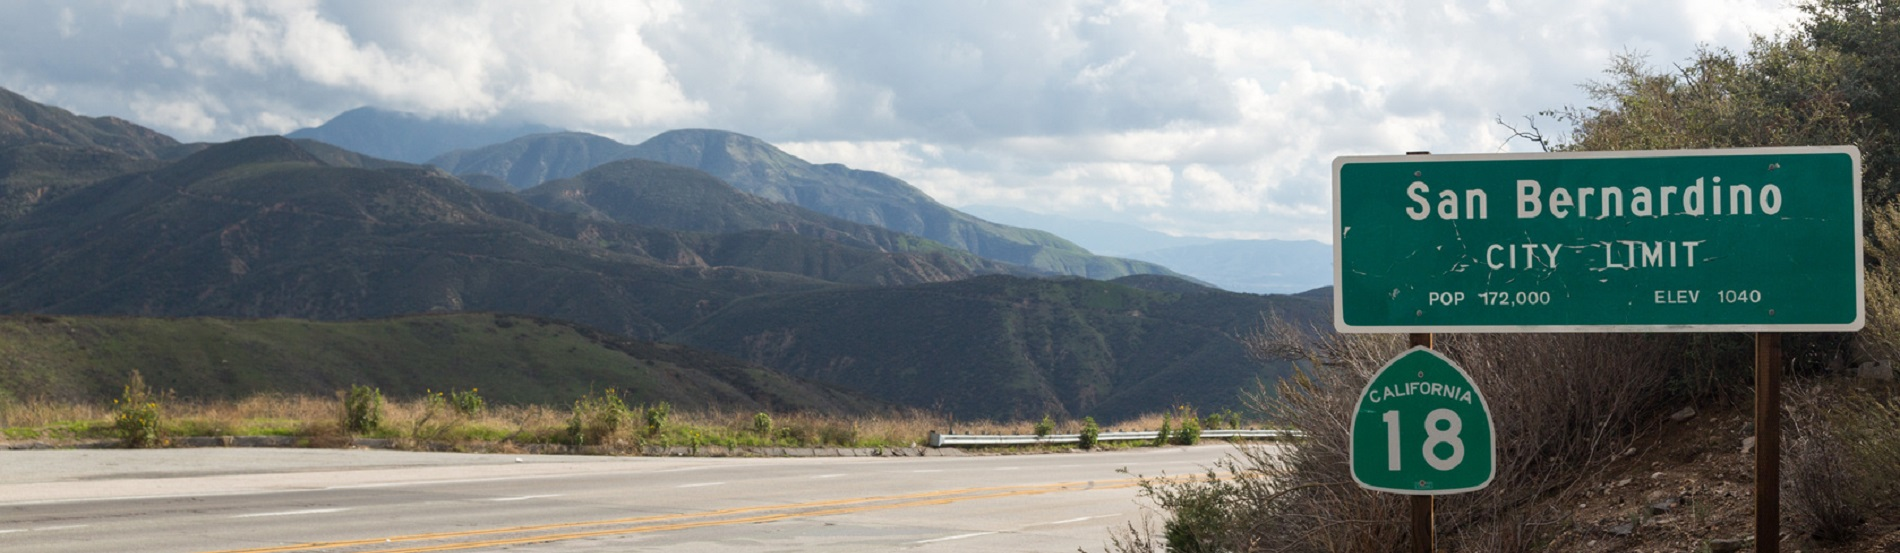 View of San Bernadino Rim of World Highway